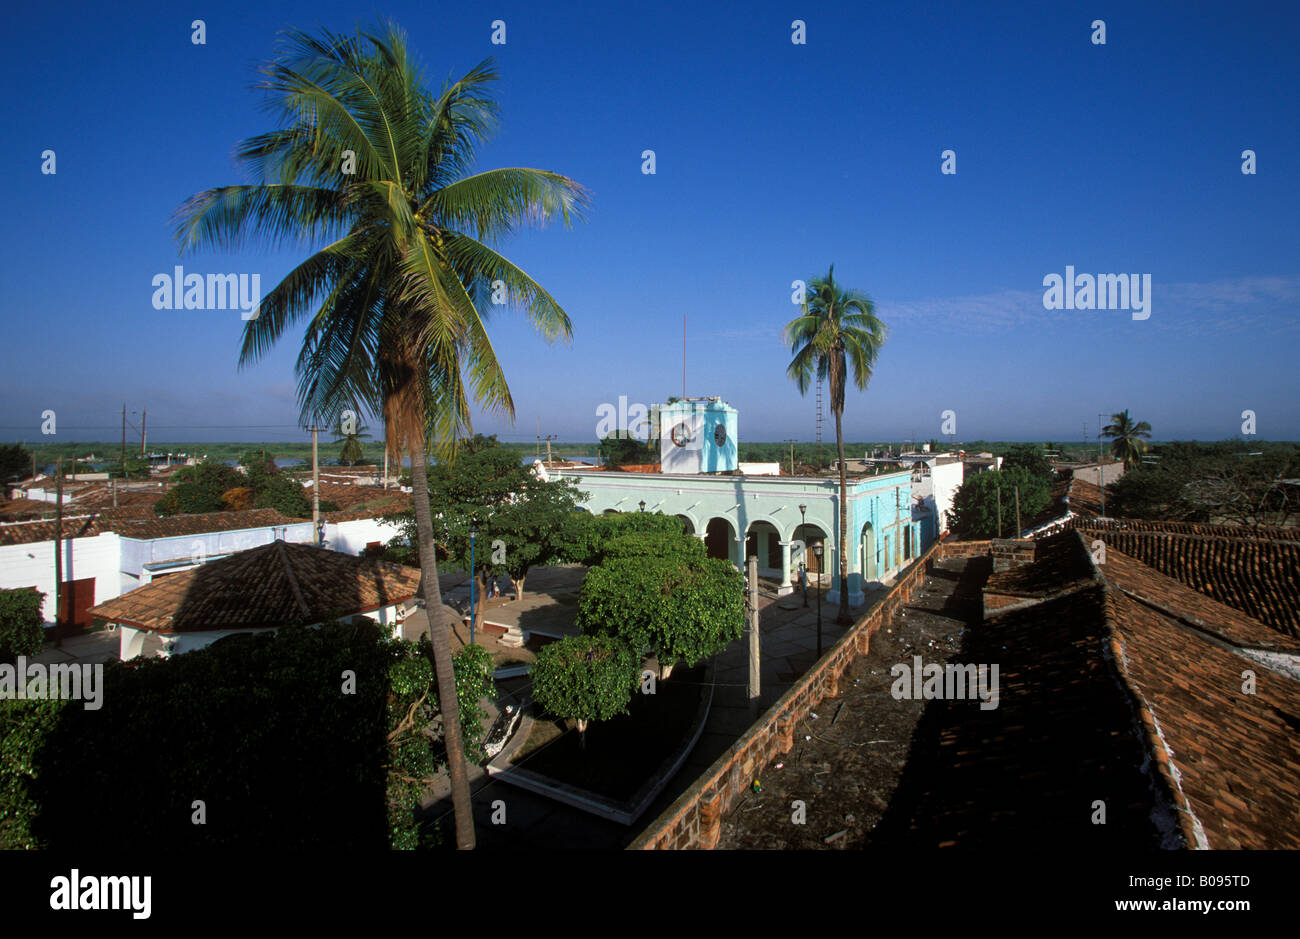 Rooftops of Mexcaltitan viewed from church tower, Nayarit, Mexico - Stock Image